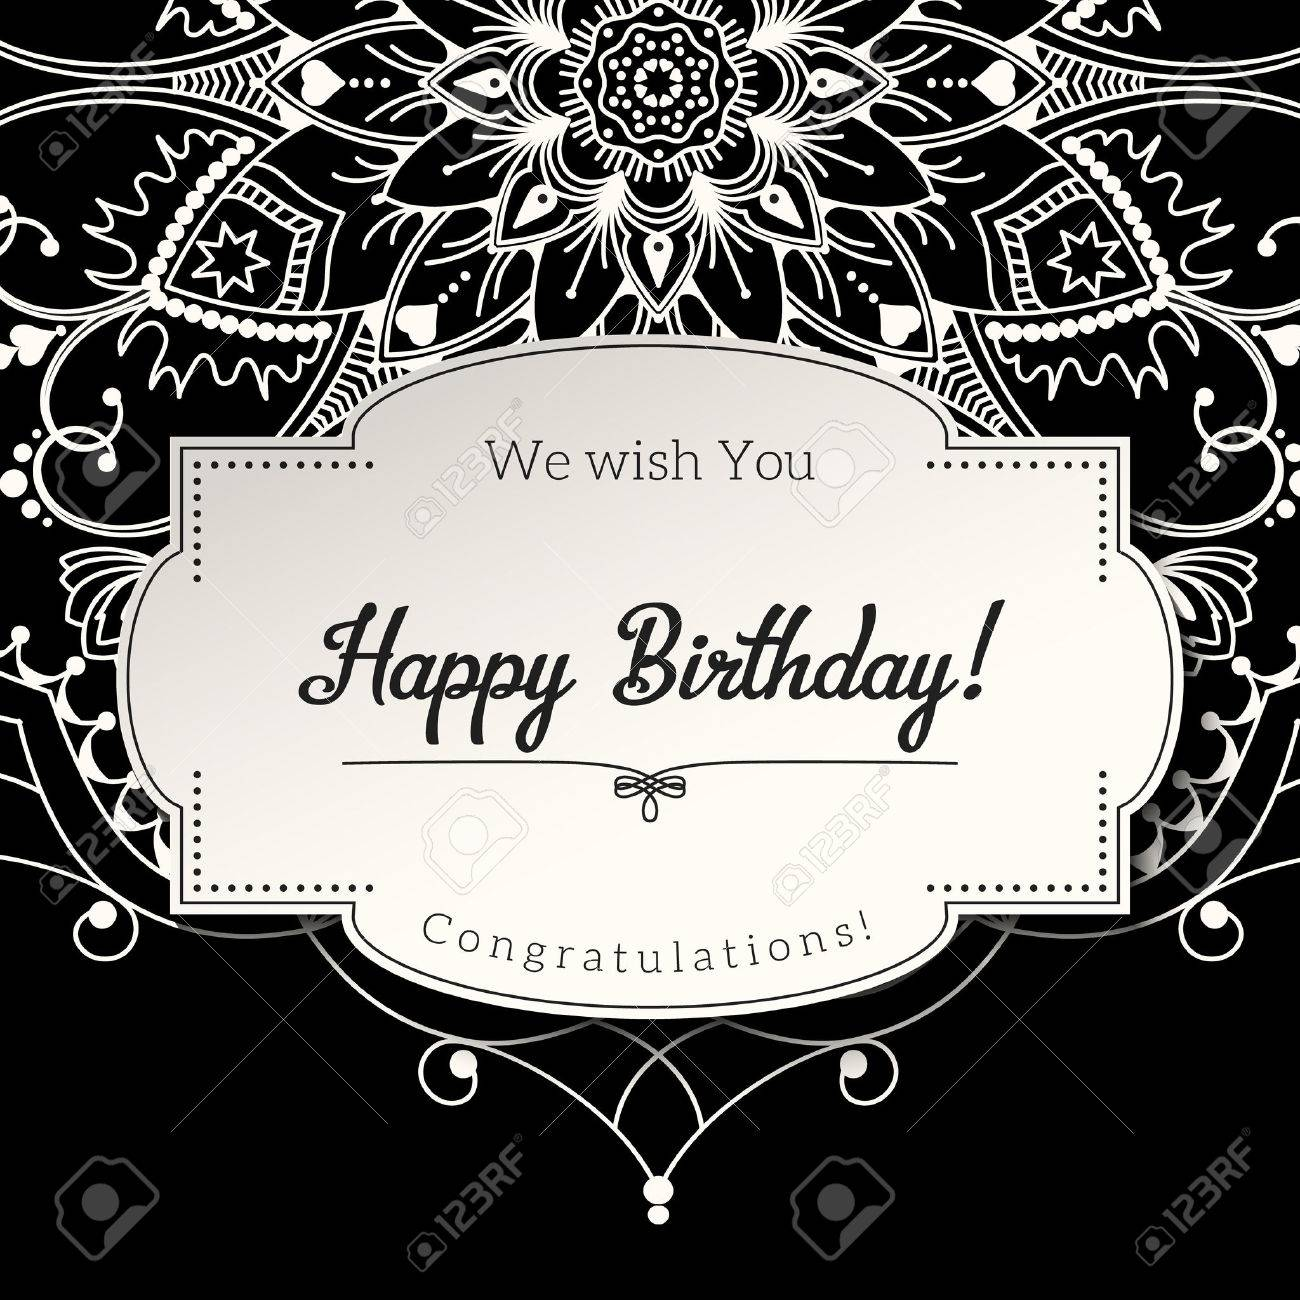 Romantic Birthday Greeting Card With White Mandala On Black